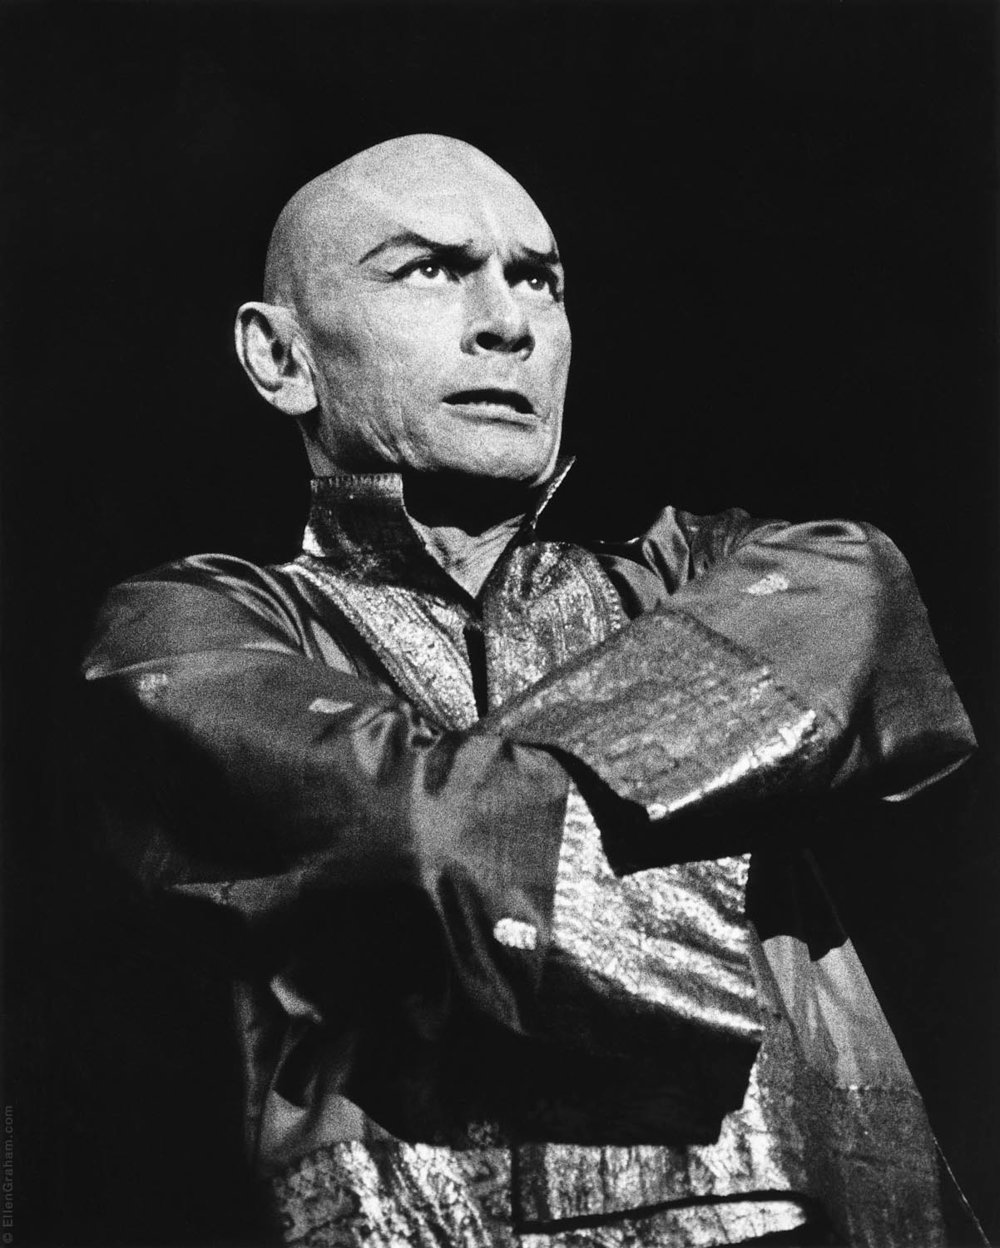 Yul Brynner, The King and I, New York, NY, 1978